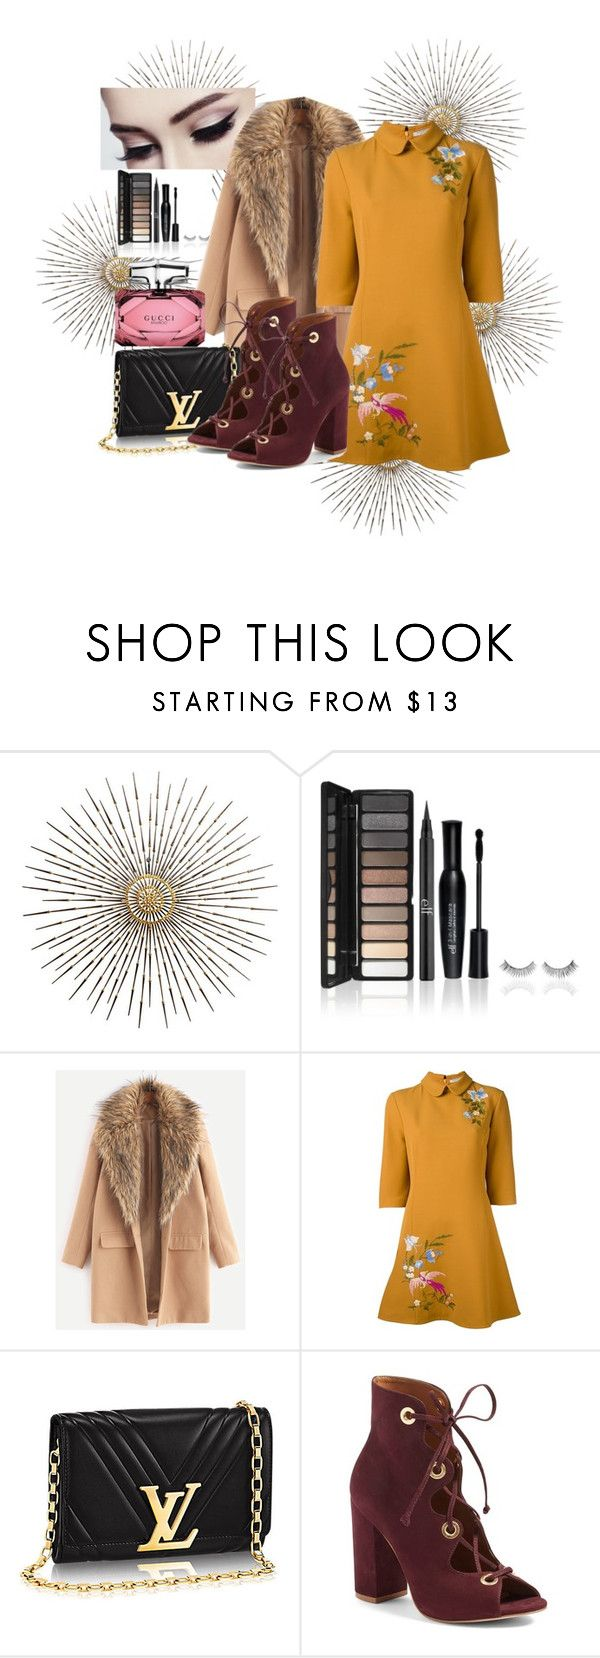 """Untitled #808"" by brandi-gurrola on Polyvore featuring VIVETTA, Steve Madden and Gucci"